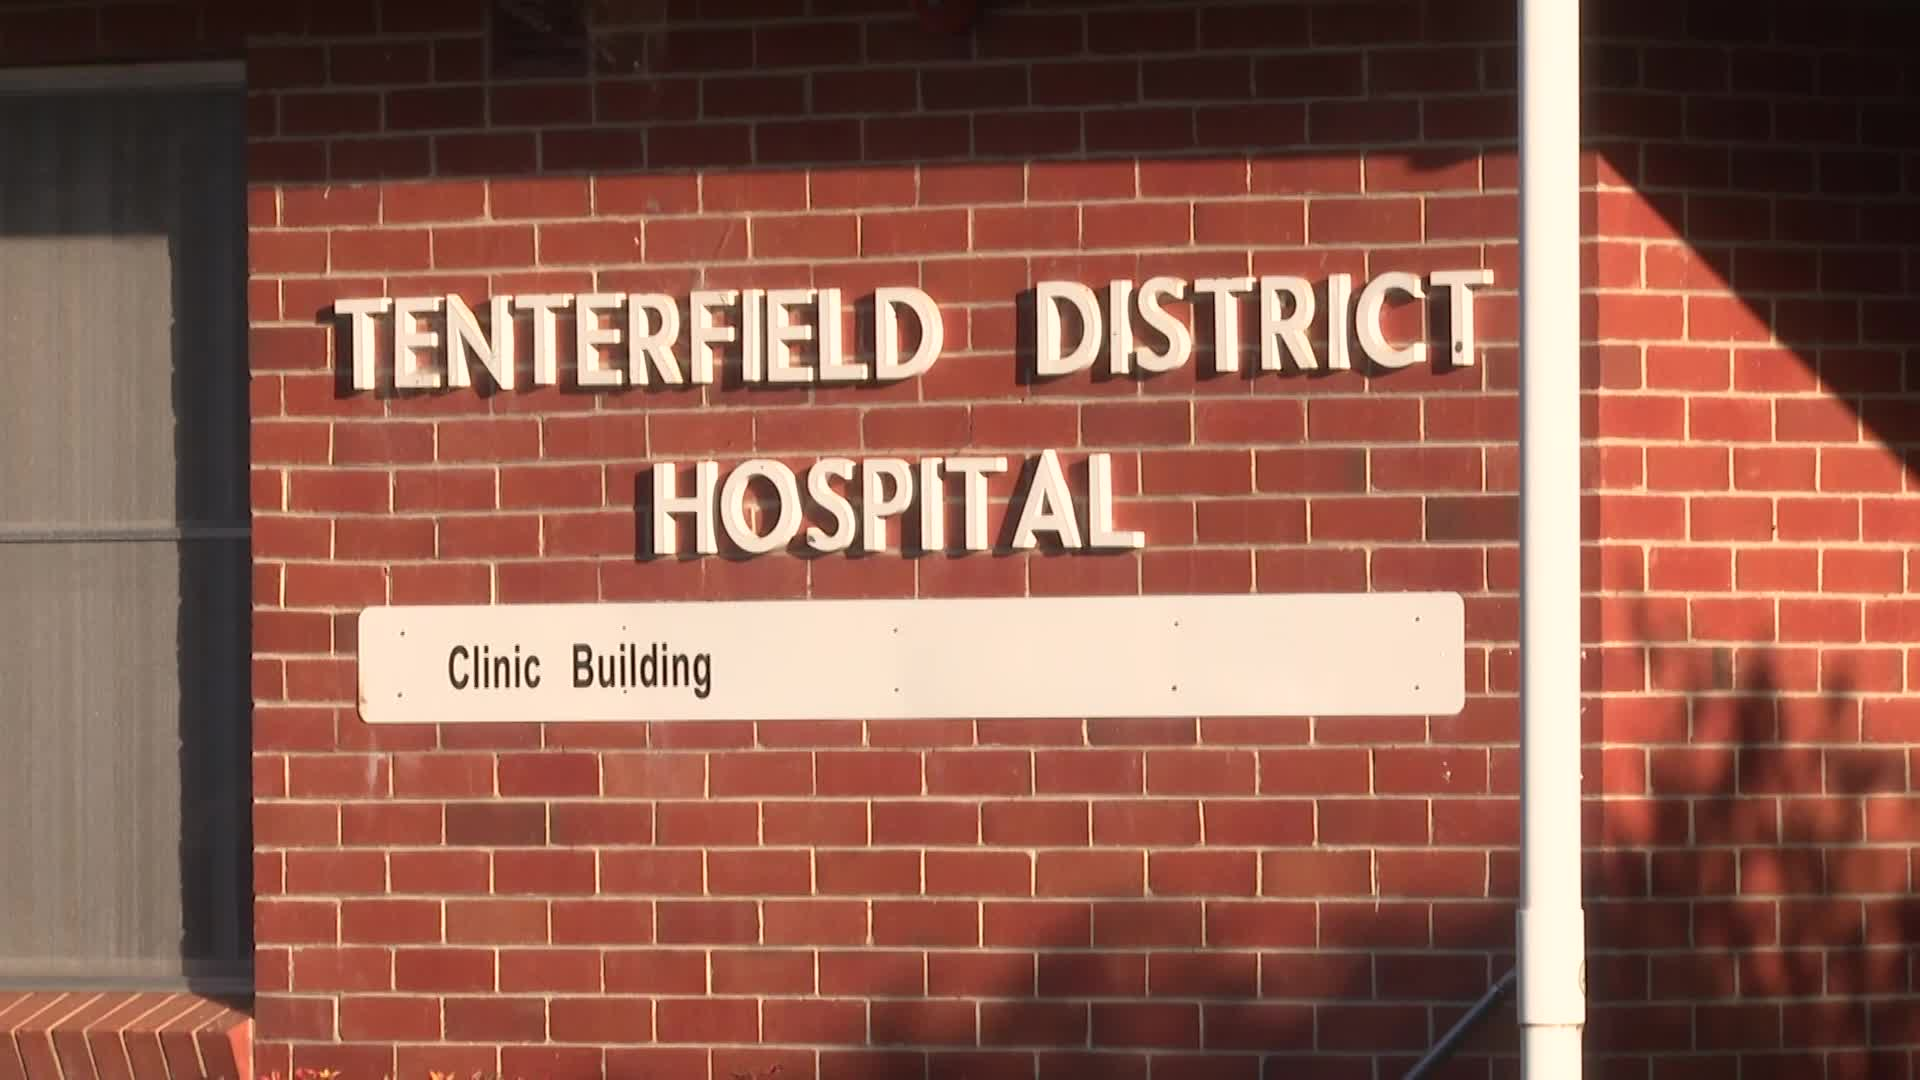 CALLS FOR INDEPENDENT INQUIRY INTO TENTERFIELD HOSPITAL